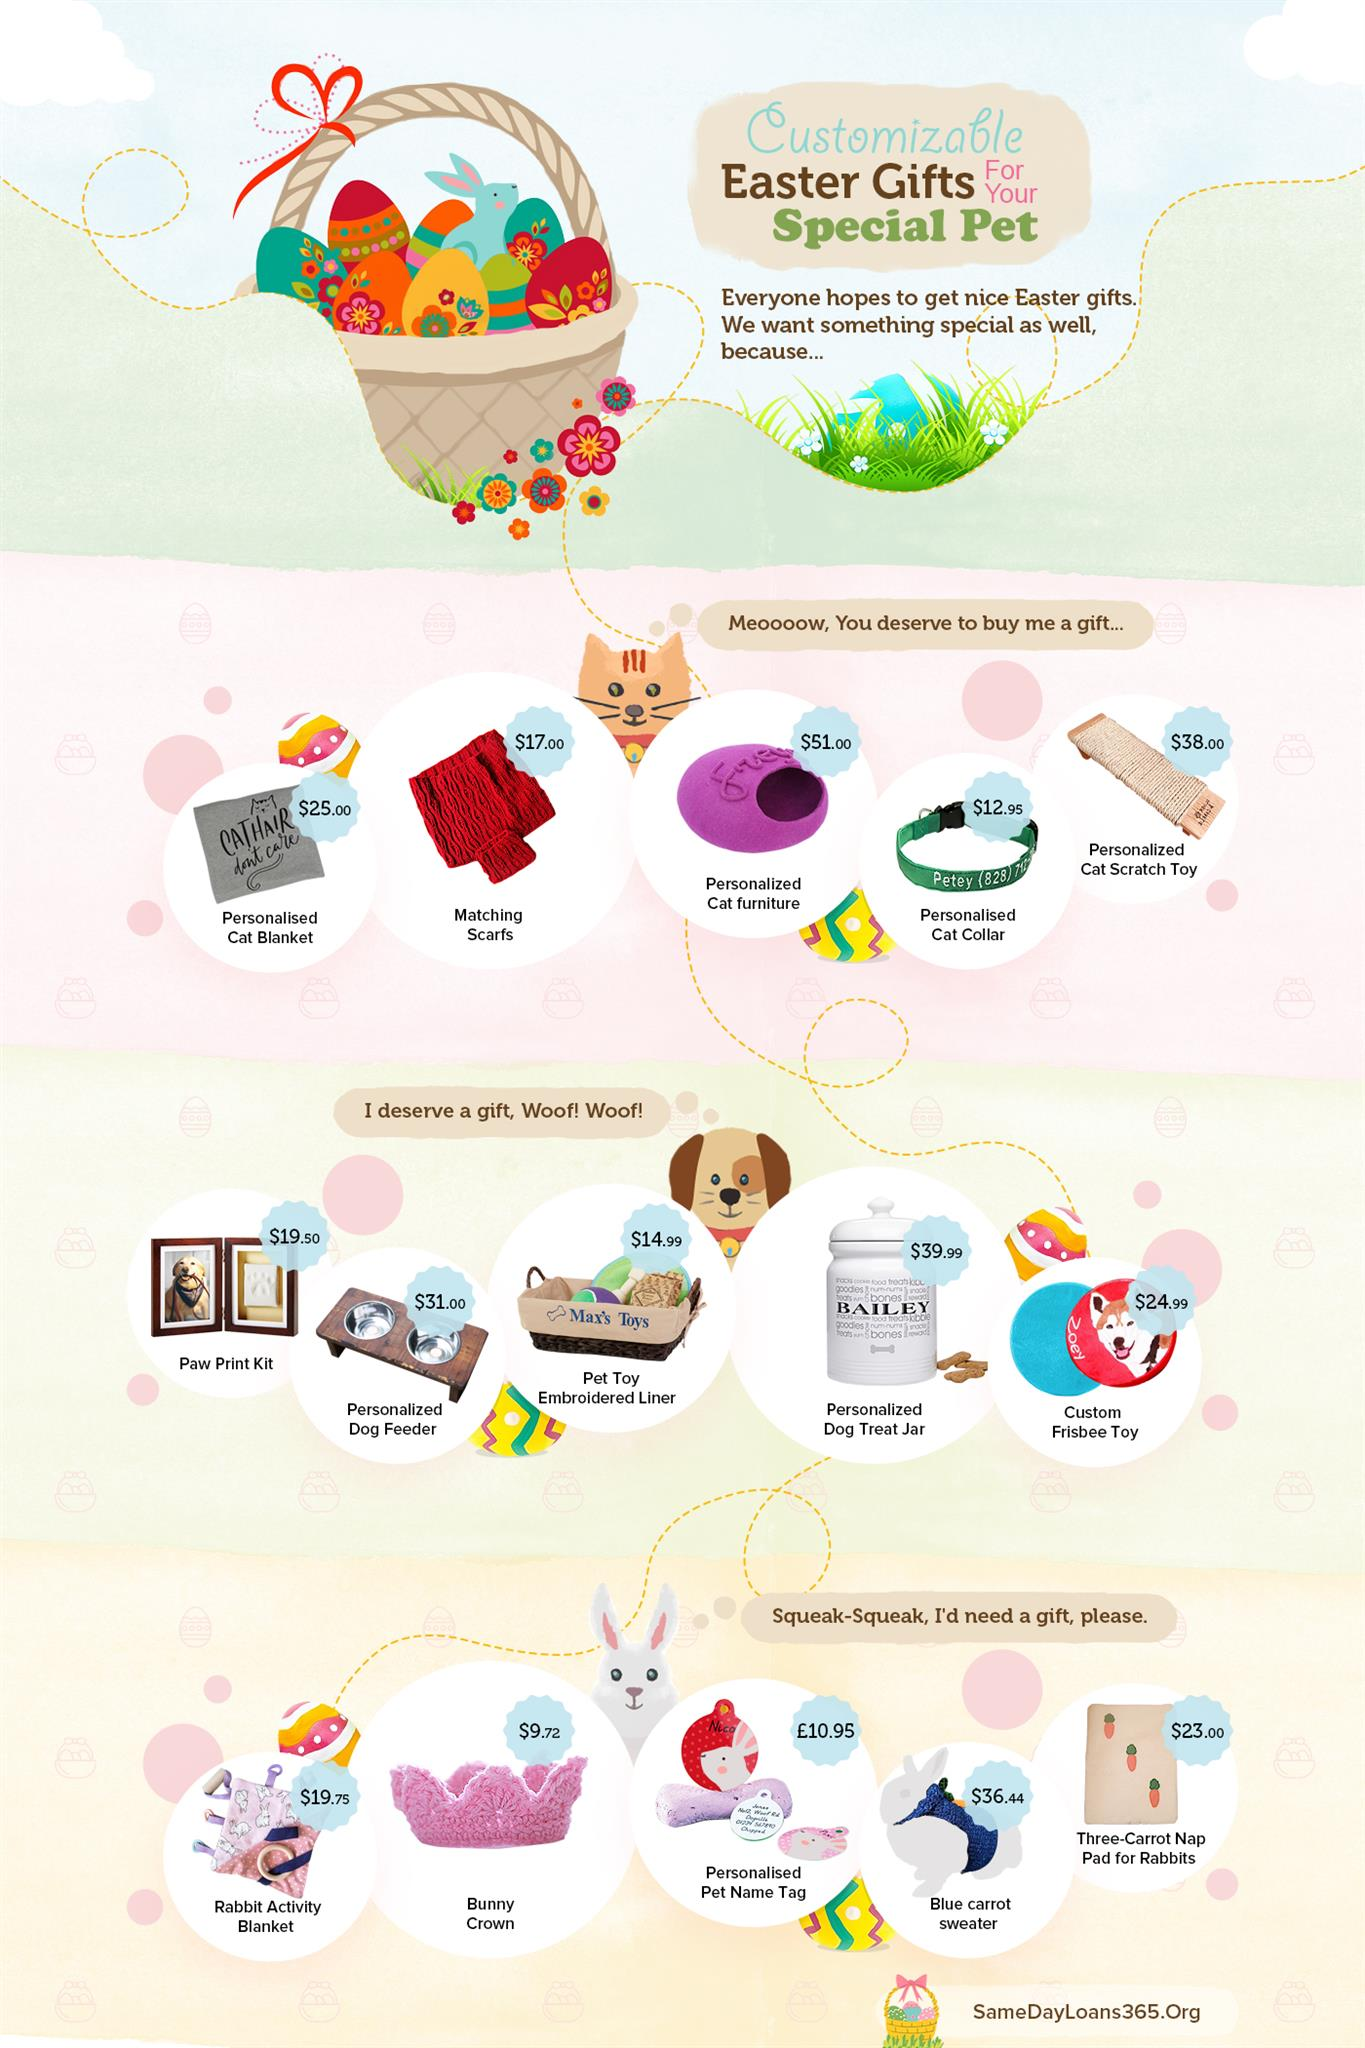 Best Customizable Easter Gifts For Your Special Pet